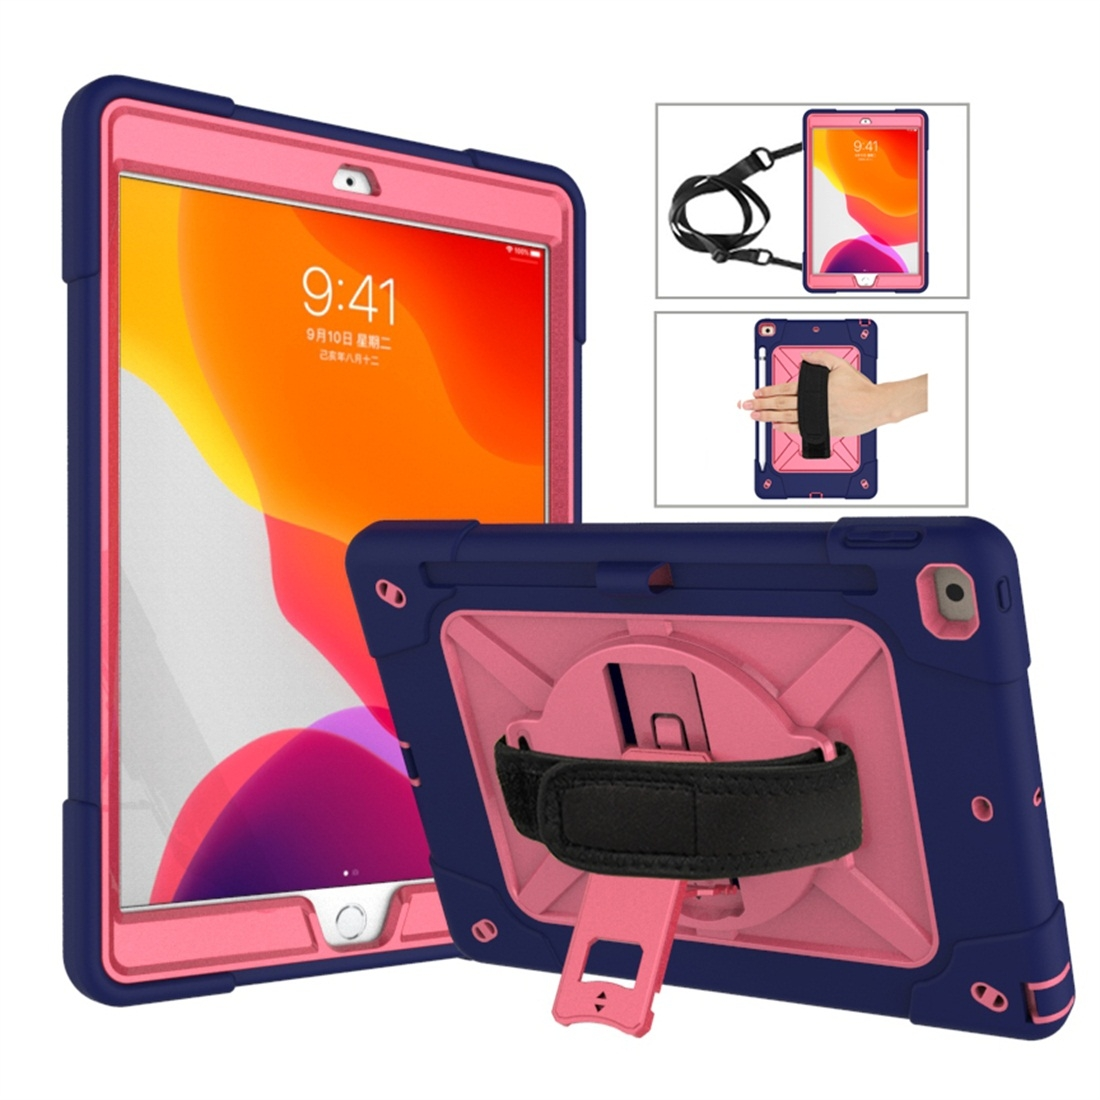 iPad 7th Generation Case (10.2 Inch) Contrasting Color Tough Durable Armor Case (Navy Blue/Rose Red)